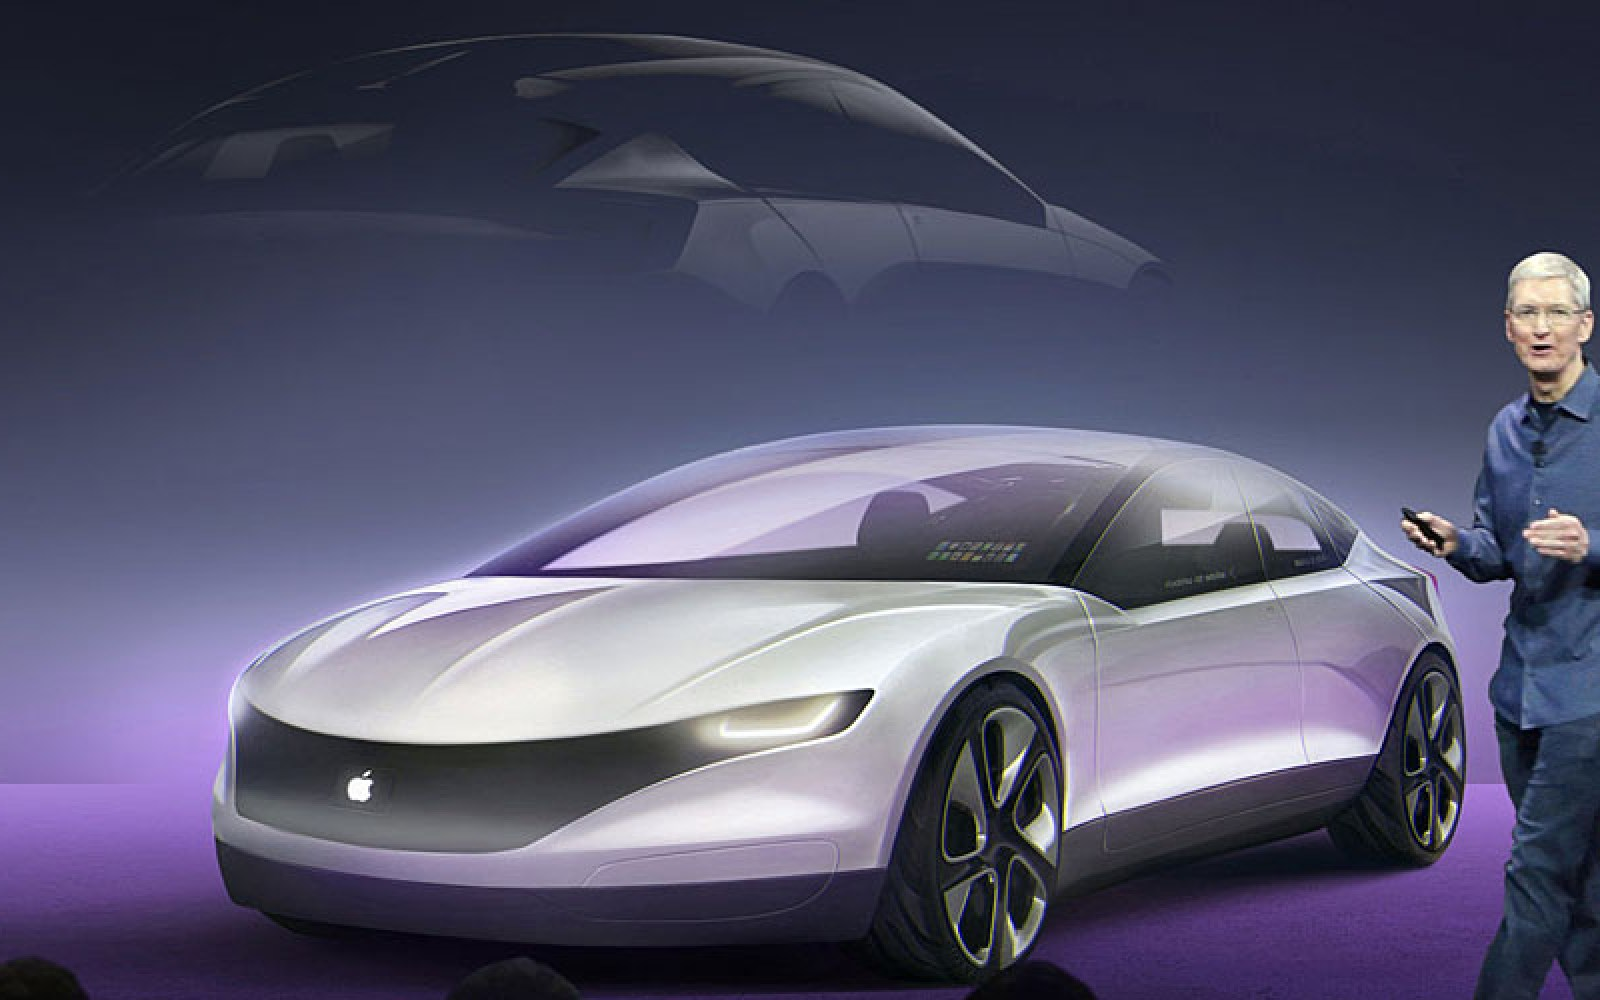 Shift your expectations, Apple Car introduction target reportedly slips back to 2021